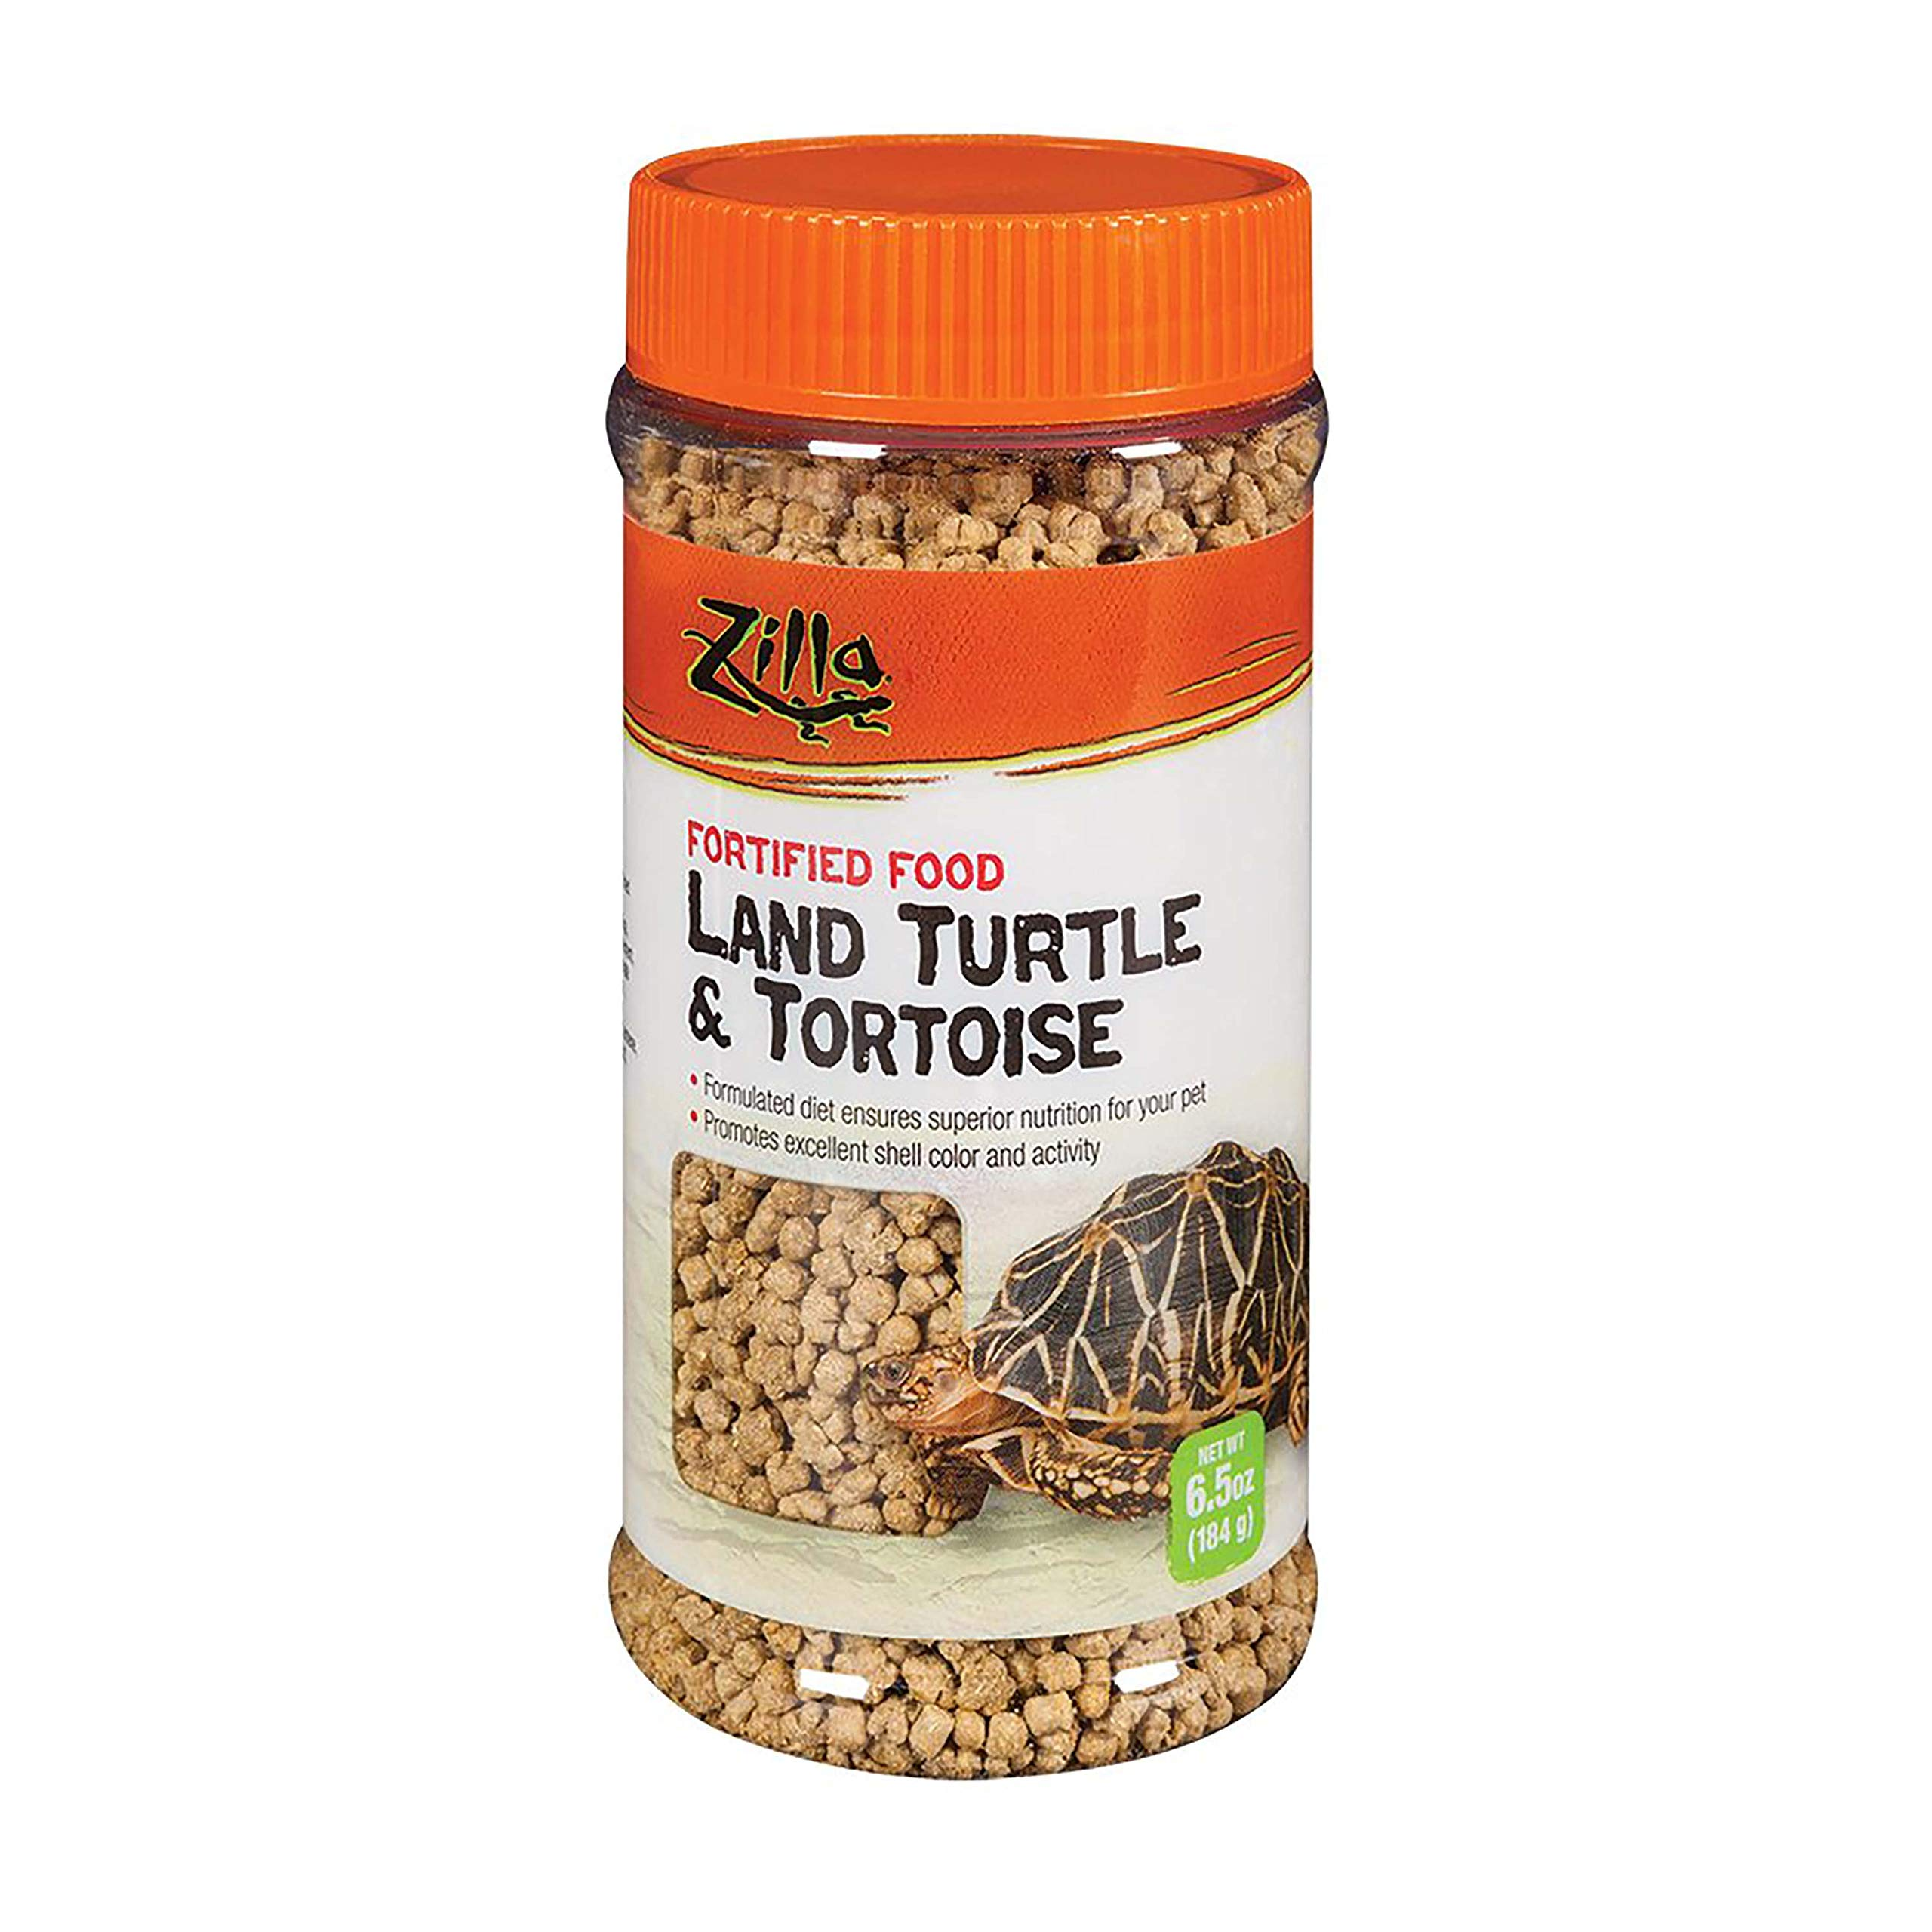 Zilla Reptile Food Land Turtle & Tortoise Fortified, 6.5-Ounce